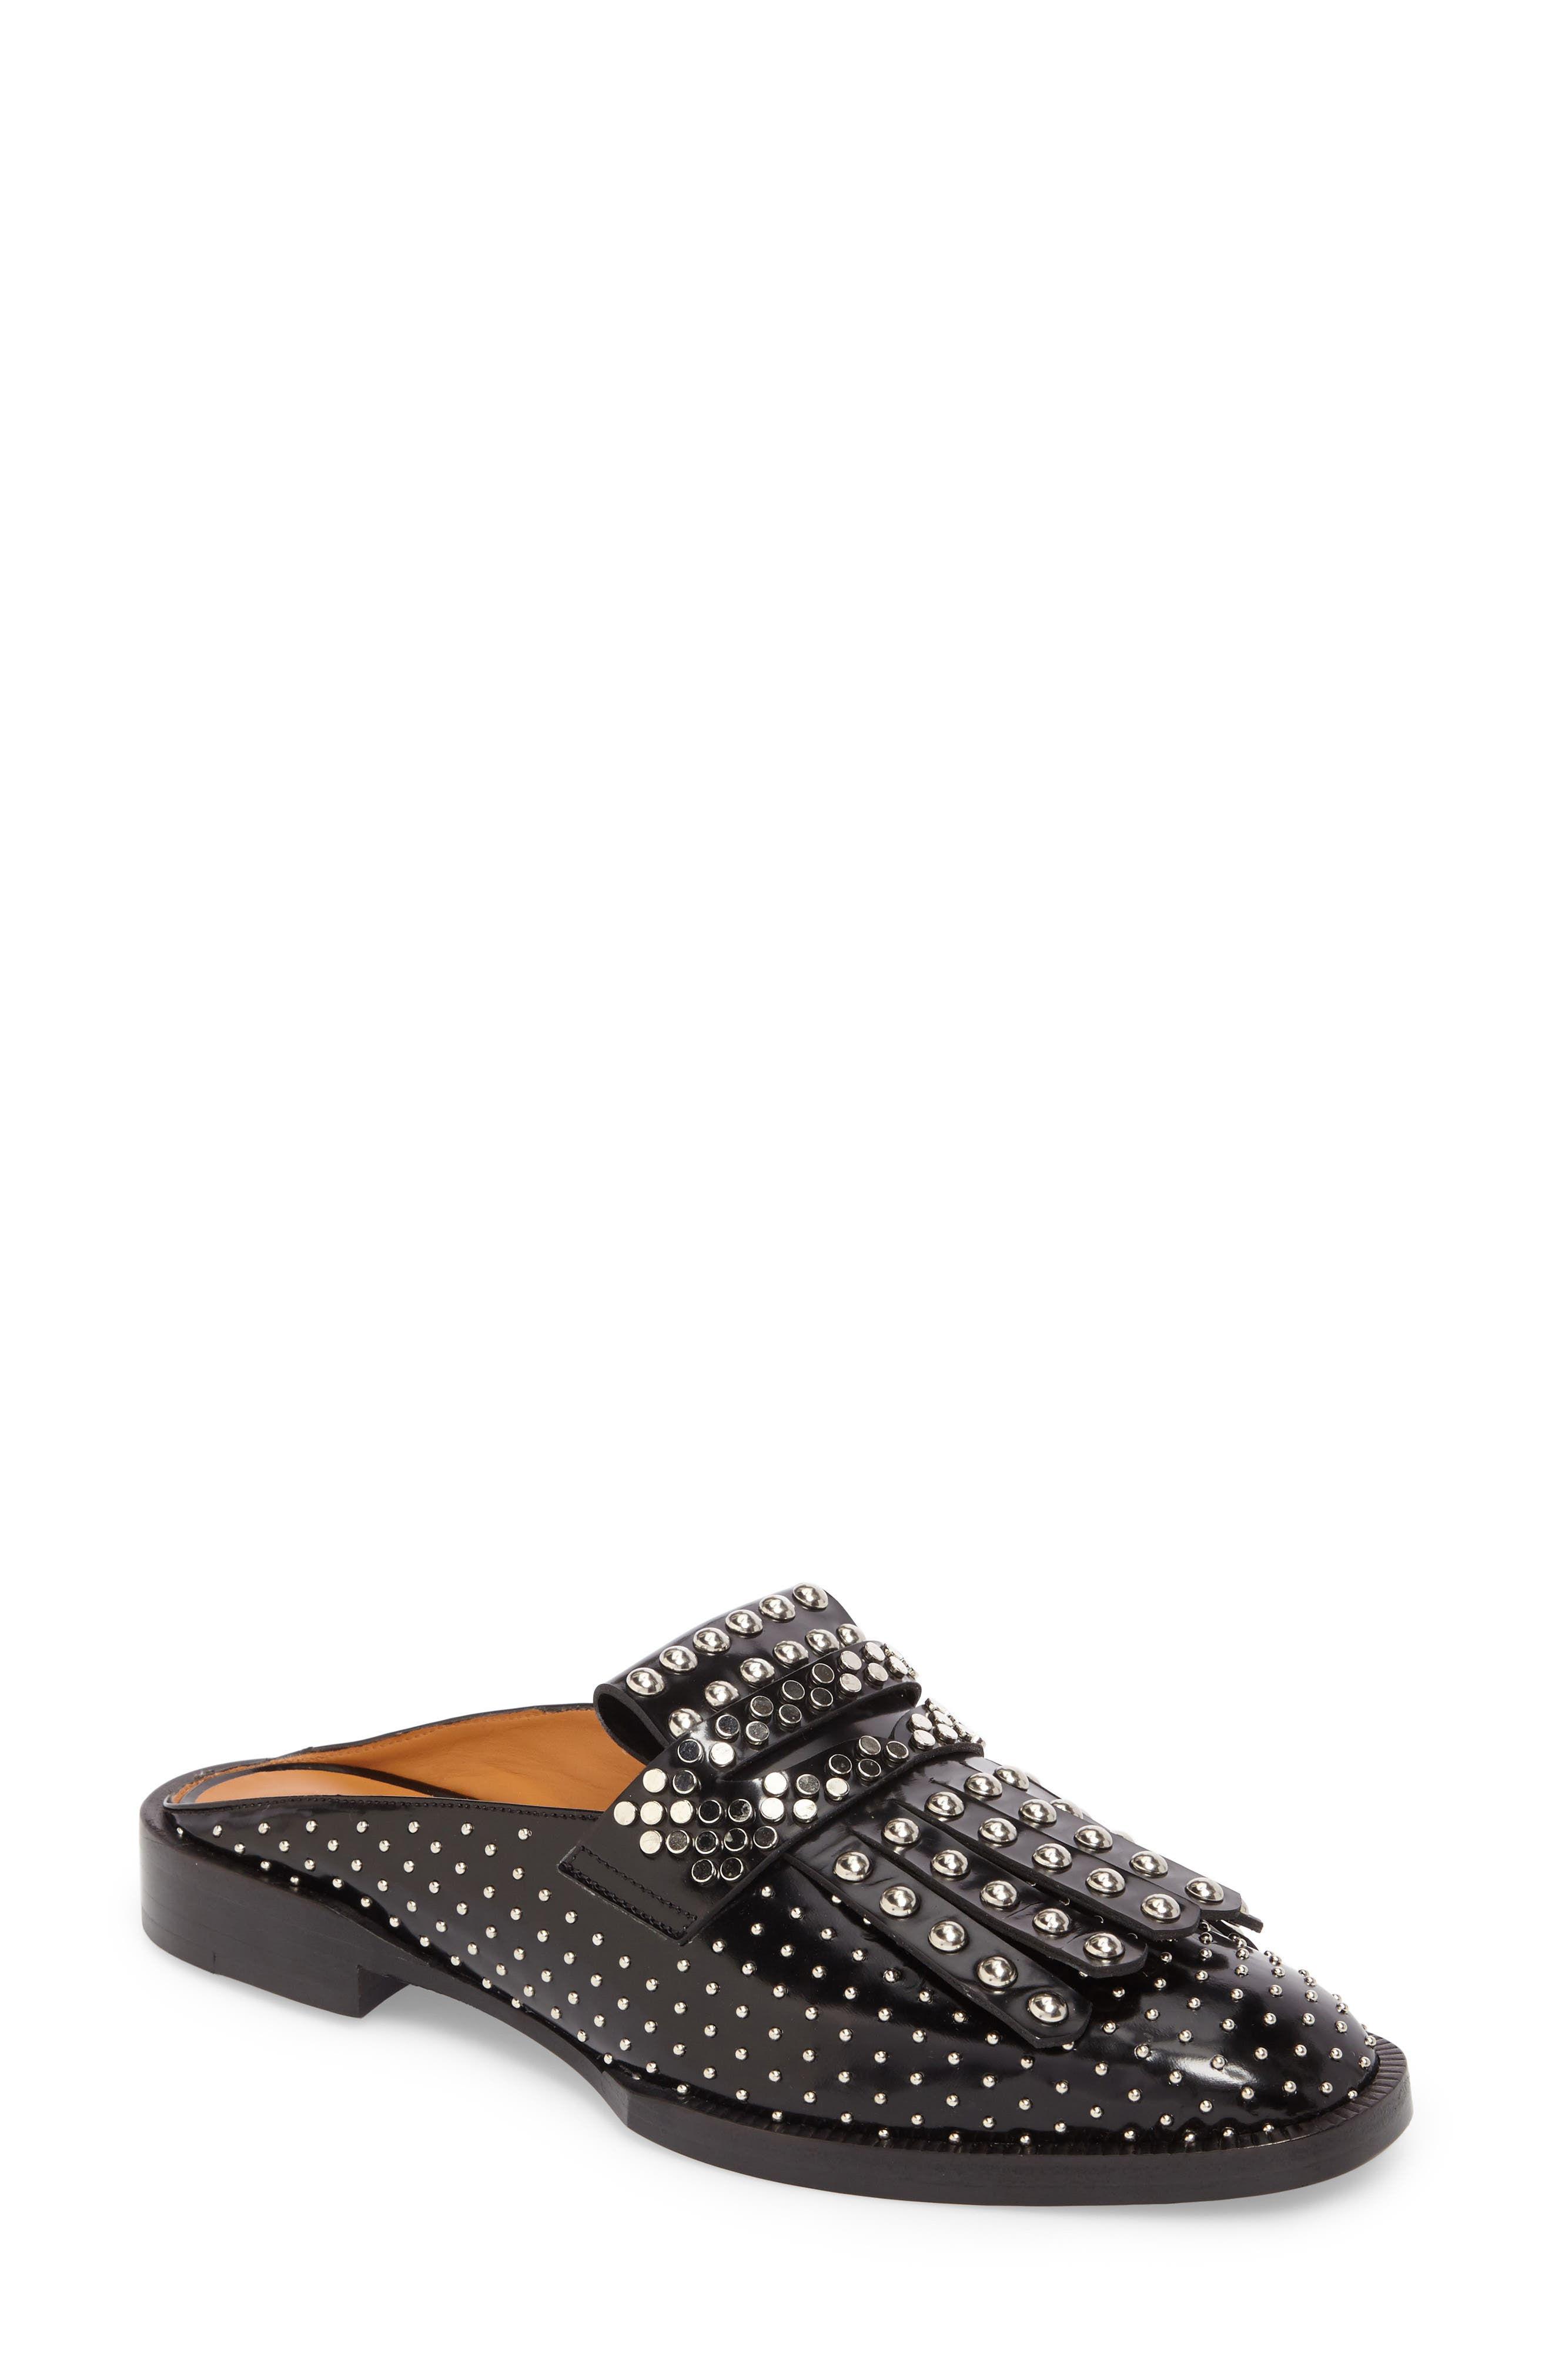 Robert Clergerie Youla Studded Kiltie Mule (Women)